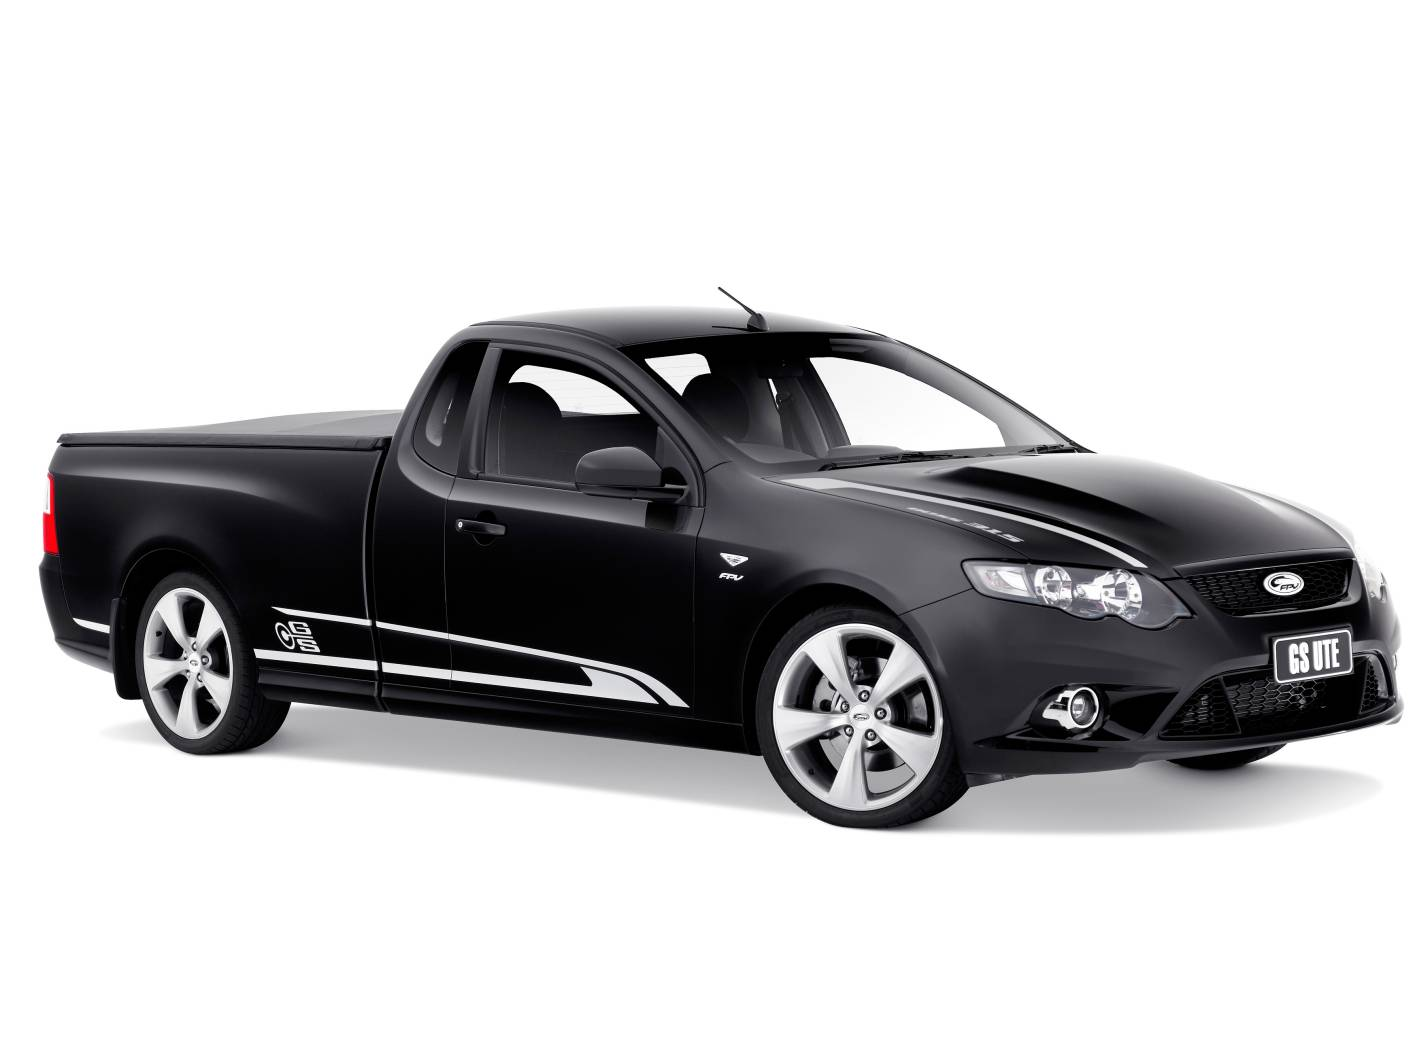 2011 Ford Fpv Gs Ute Review Performancedrive